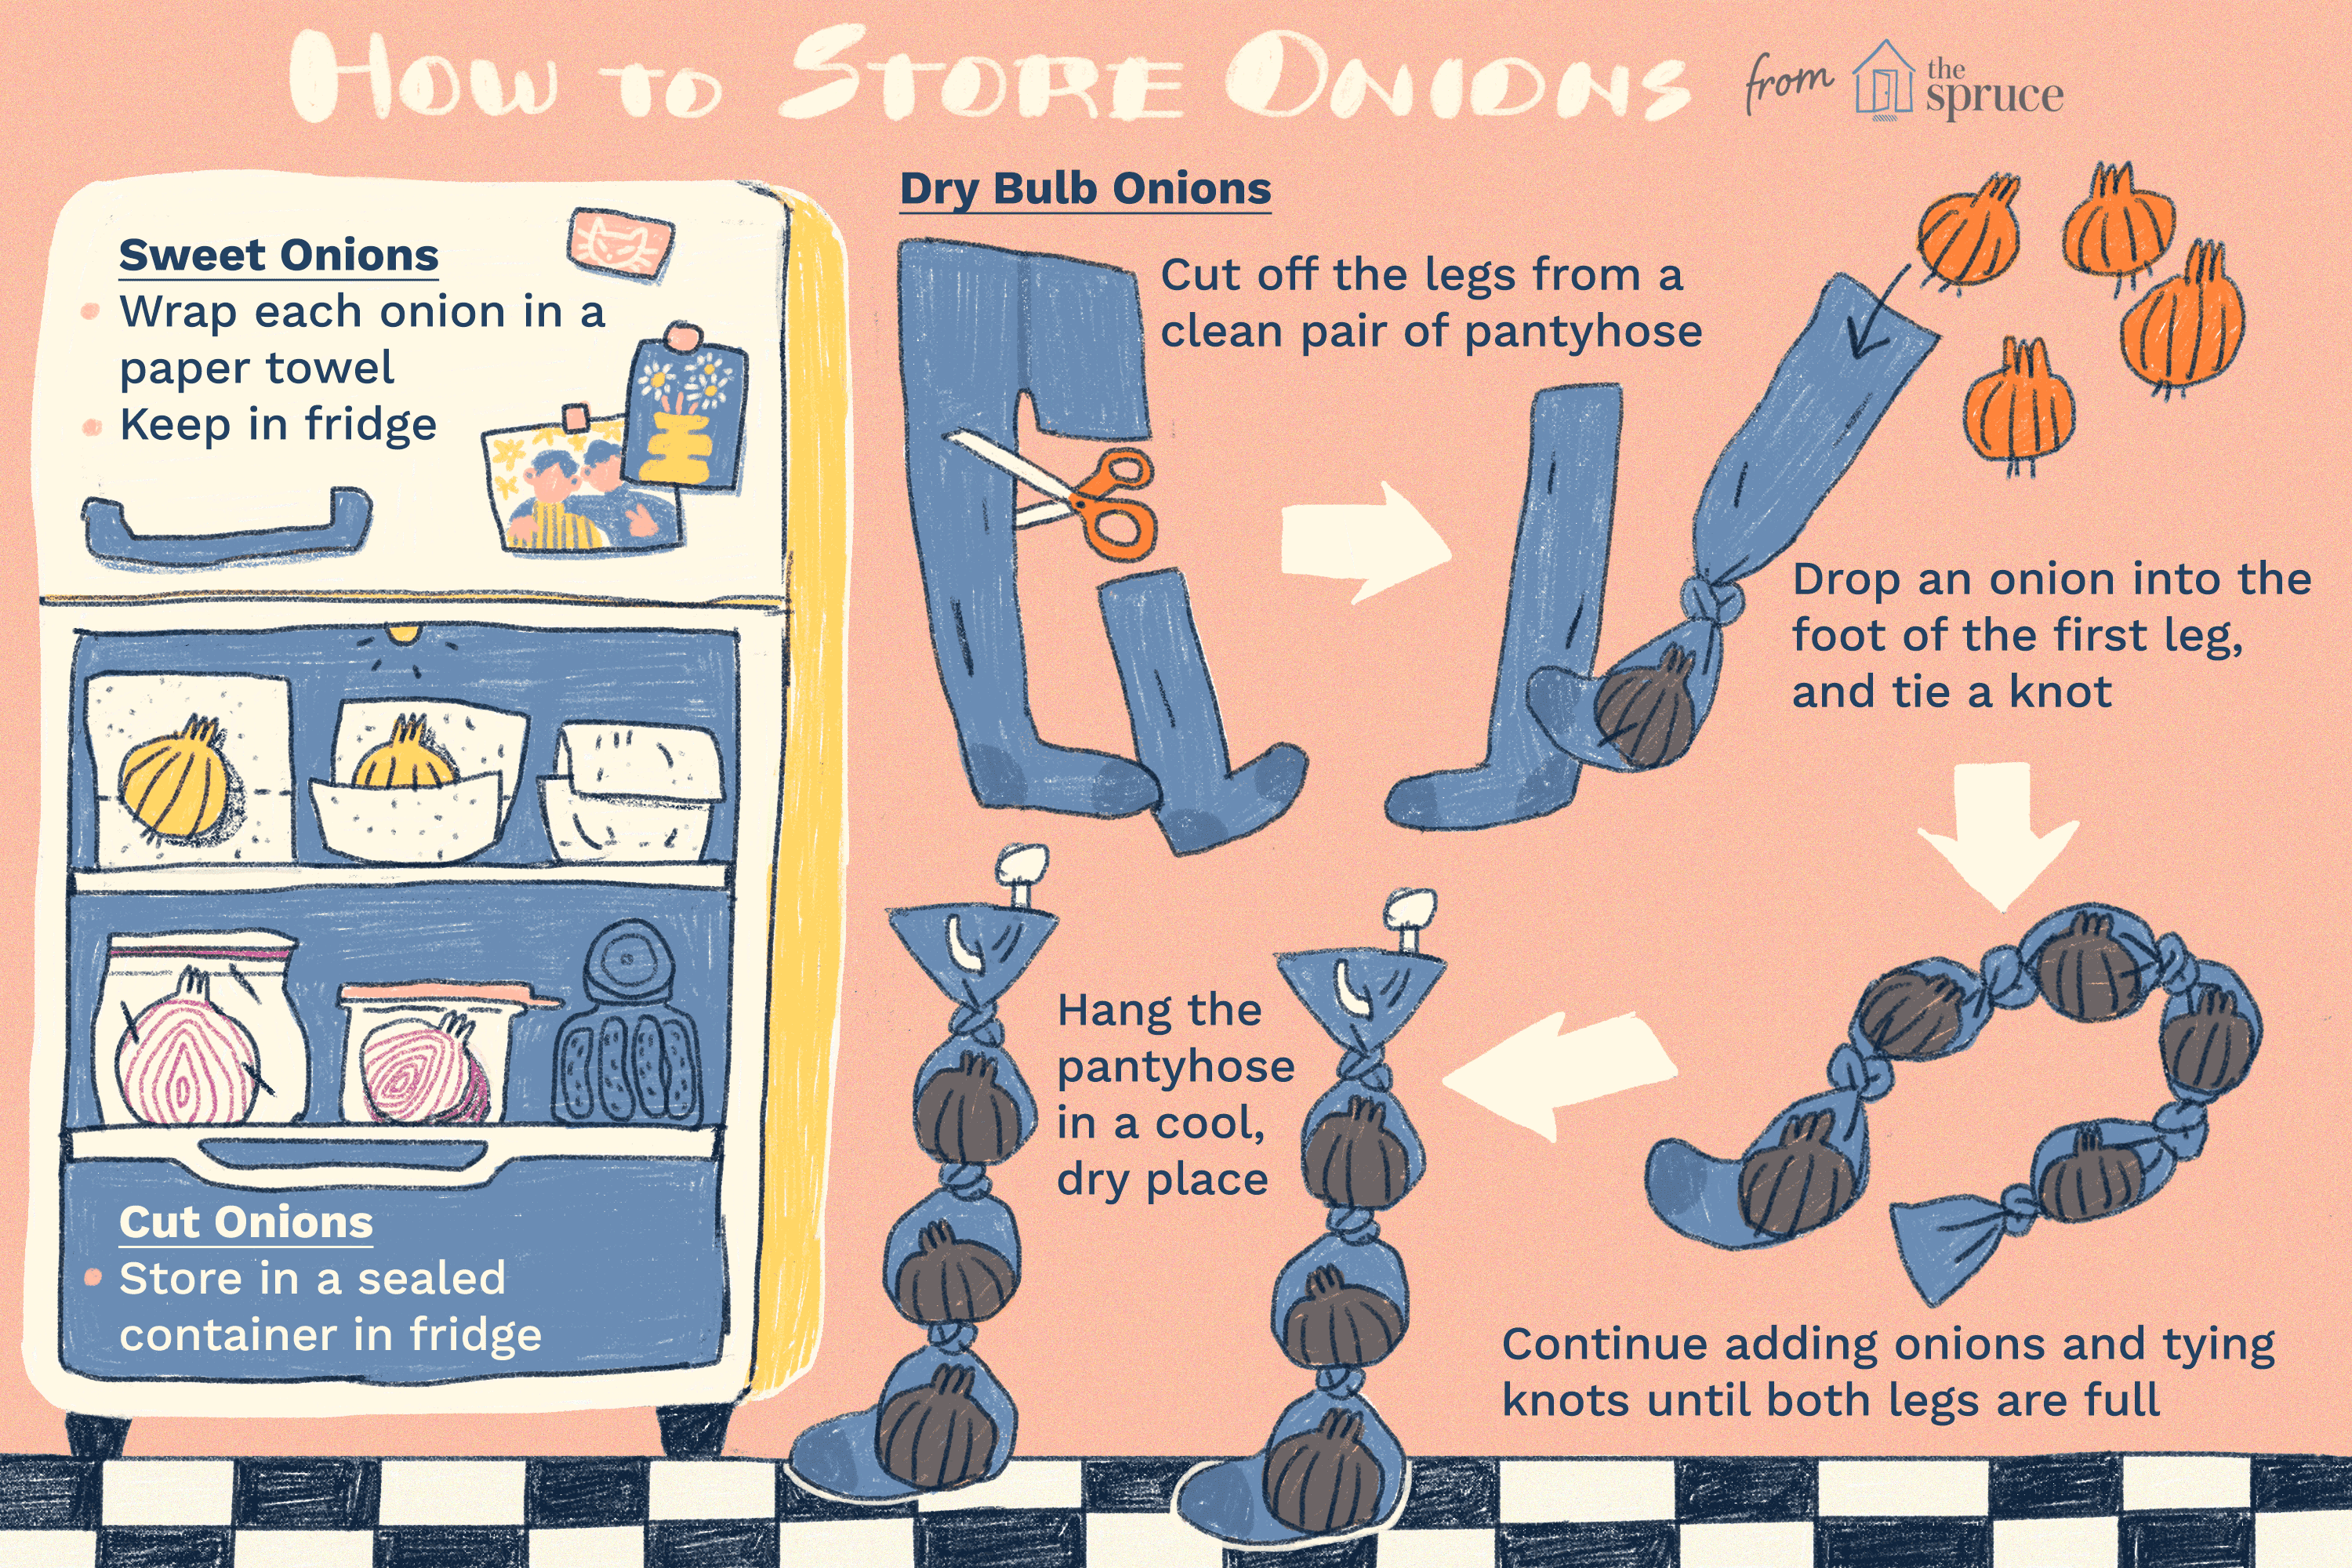 The Best Way To Store Onions